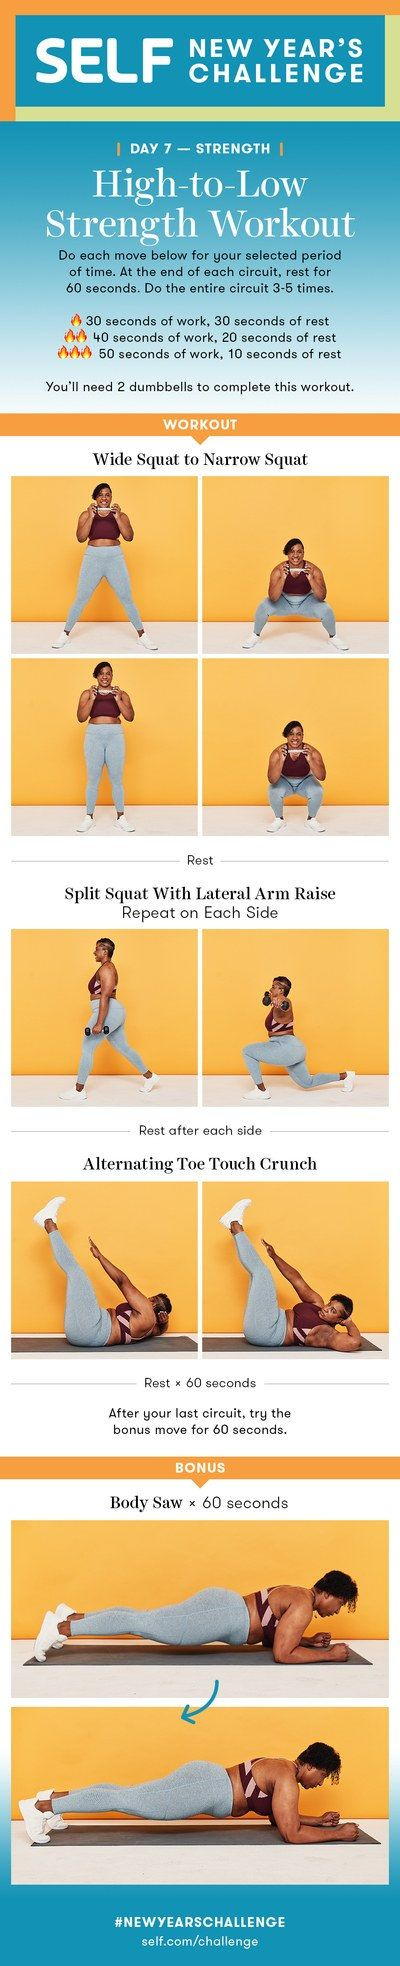 3-Move Lower Body Dumbbell Workout